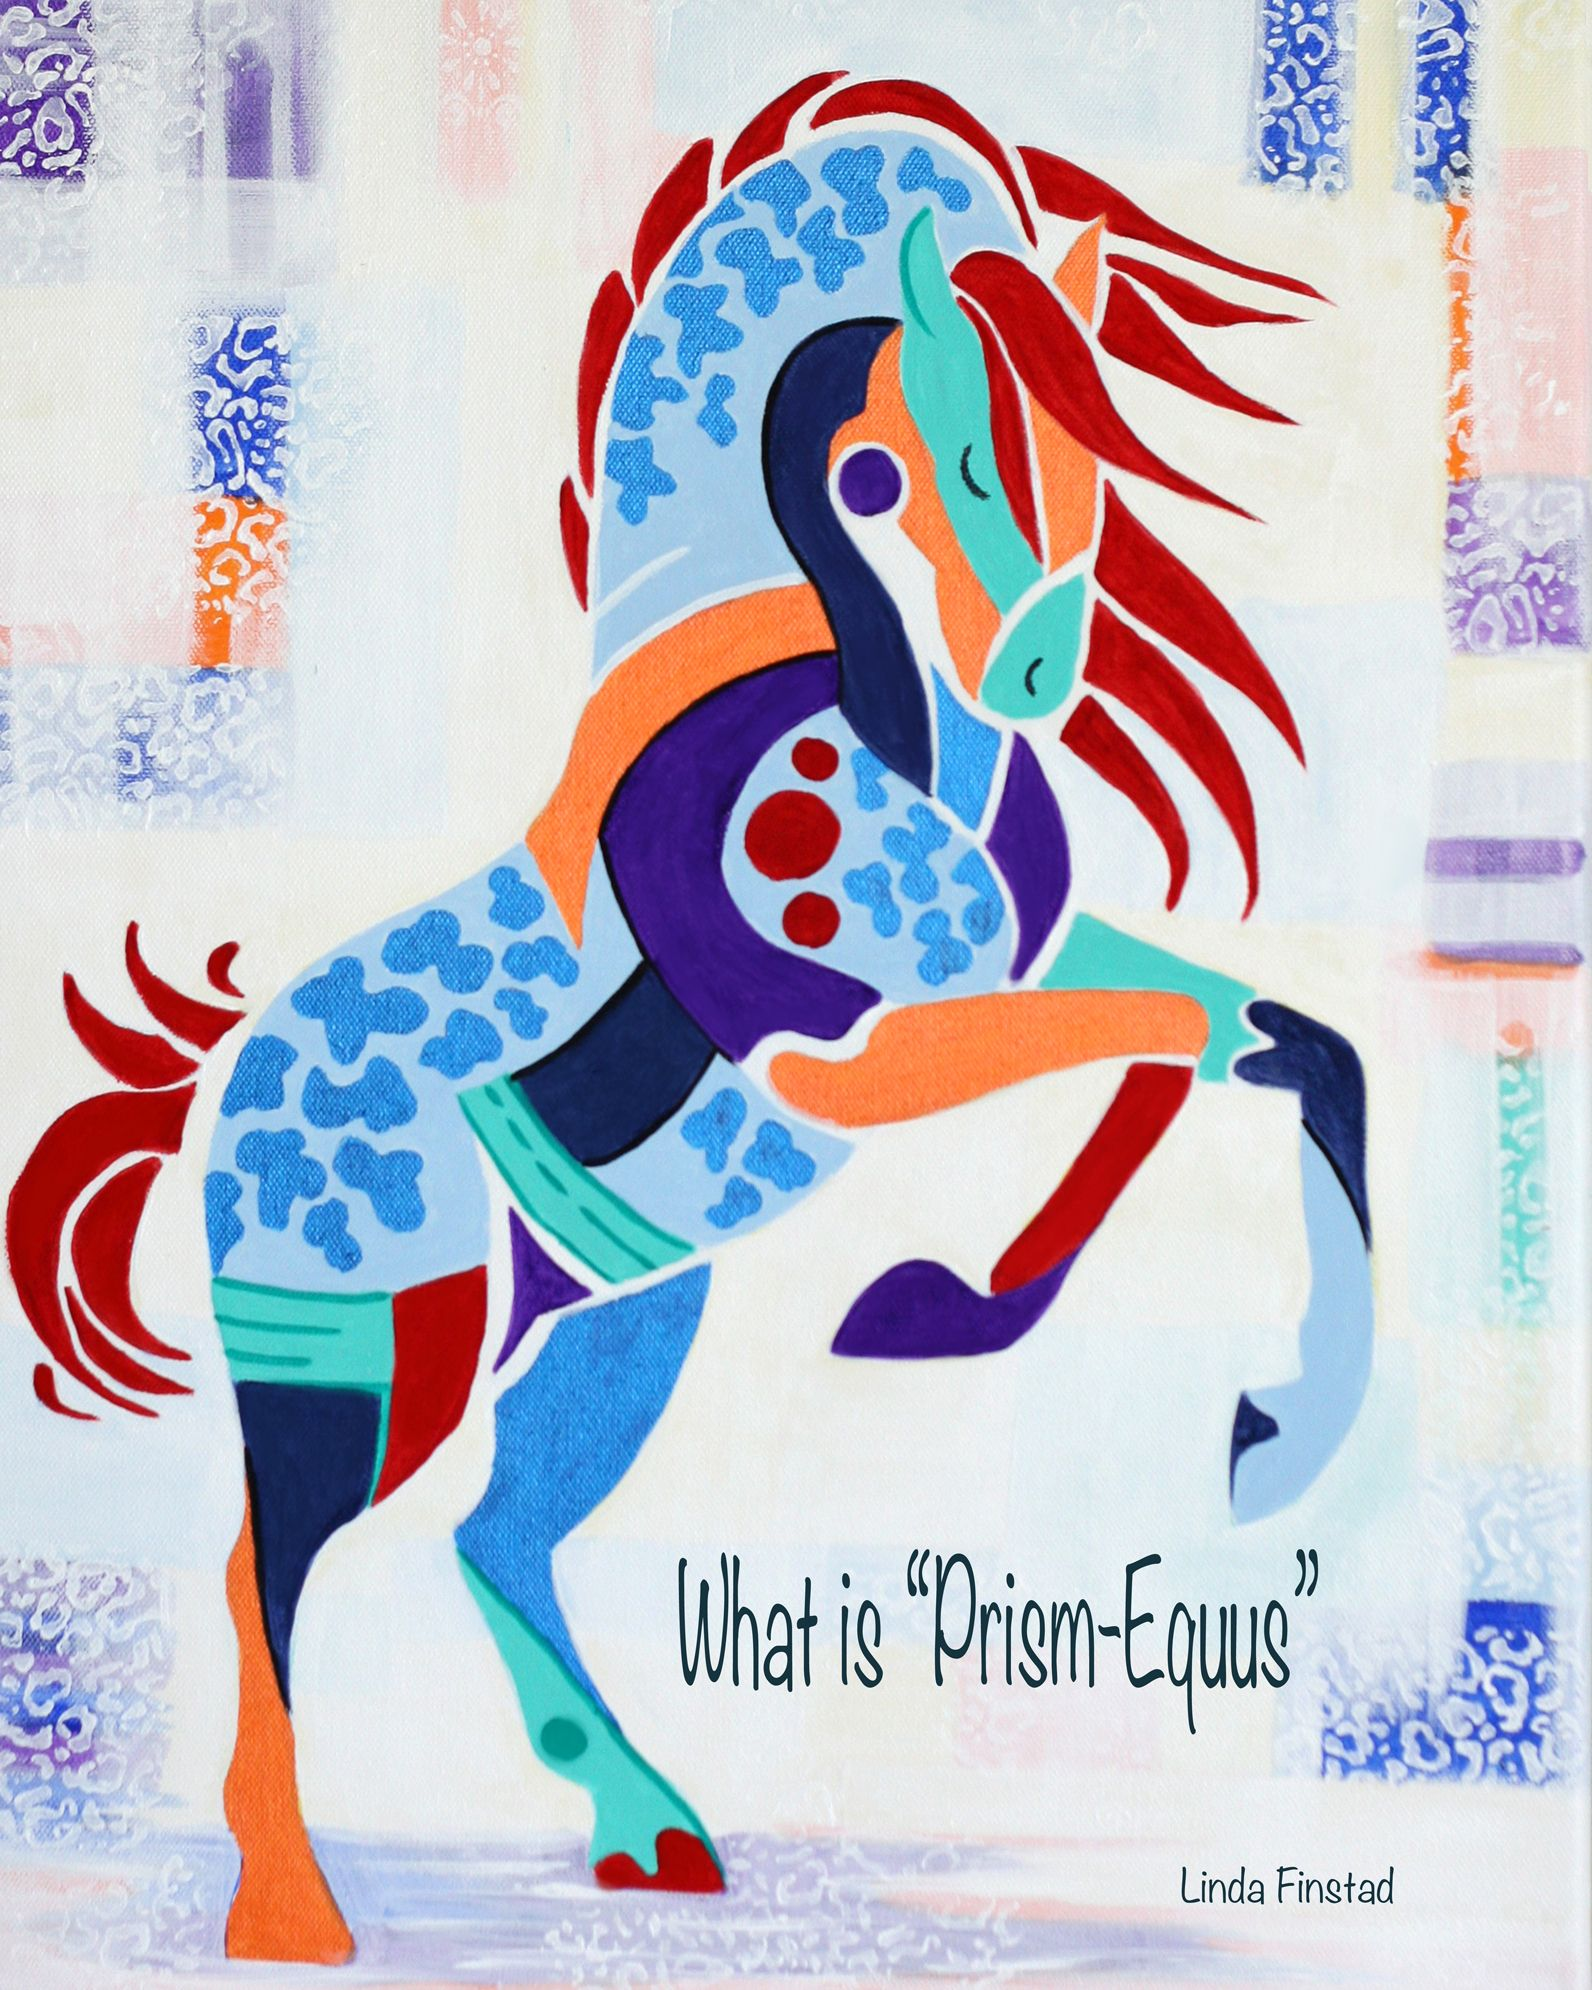 You May Have Seen The Multi Coloured Horses And Heard The Name But What Exactly Is Prism Equus Painted Pony Blue Painting Horse Coloring